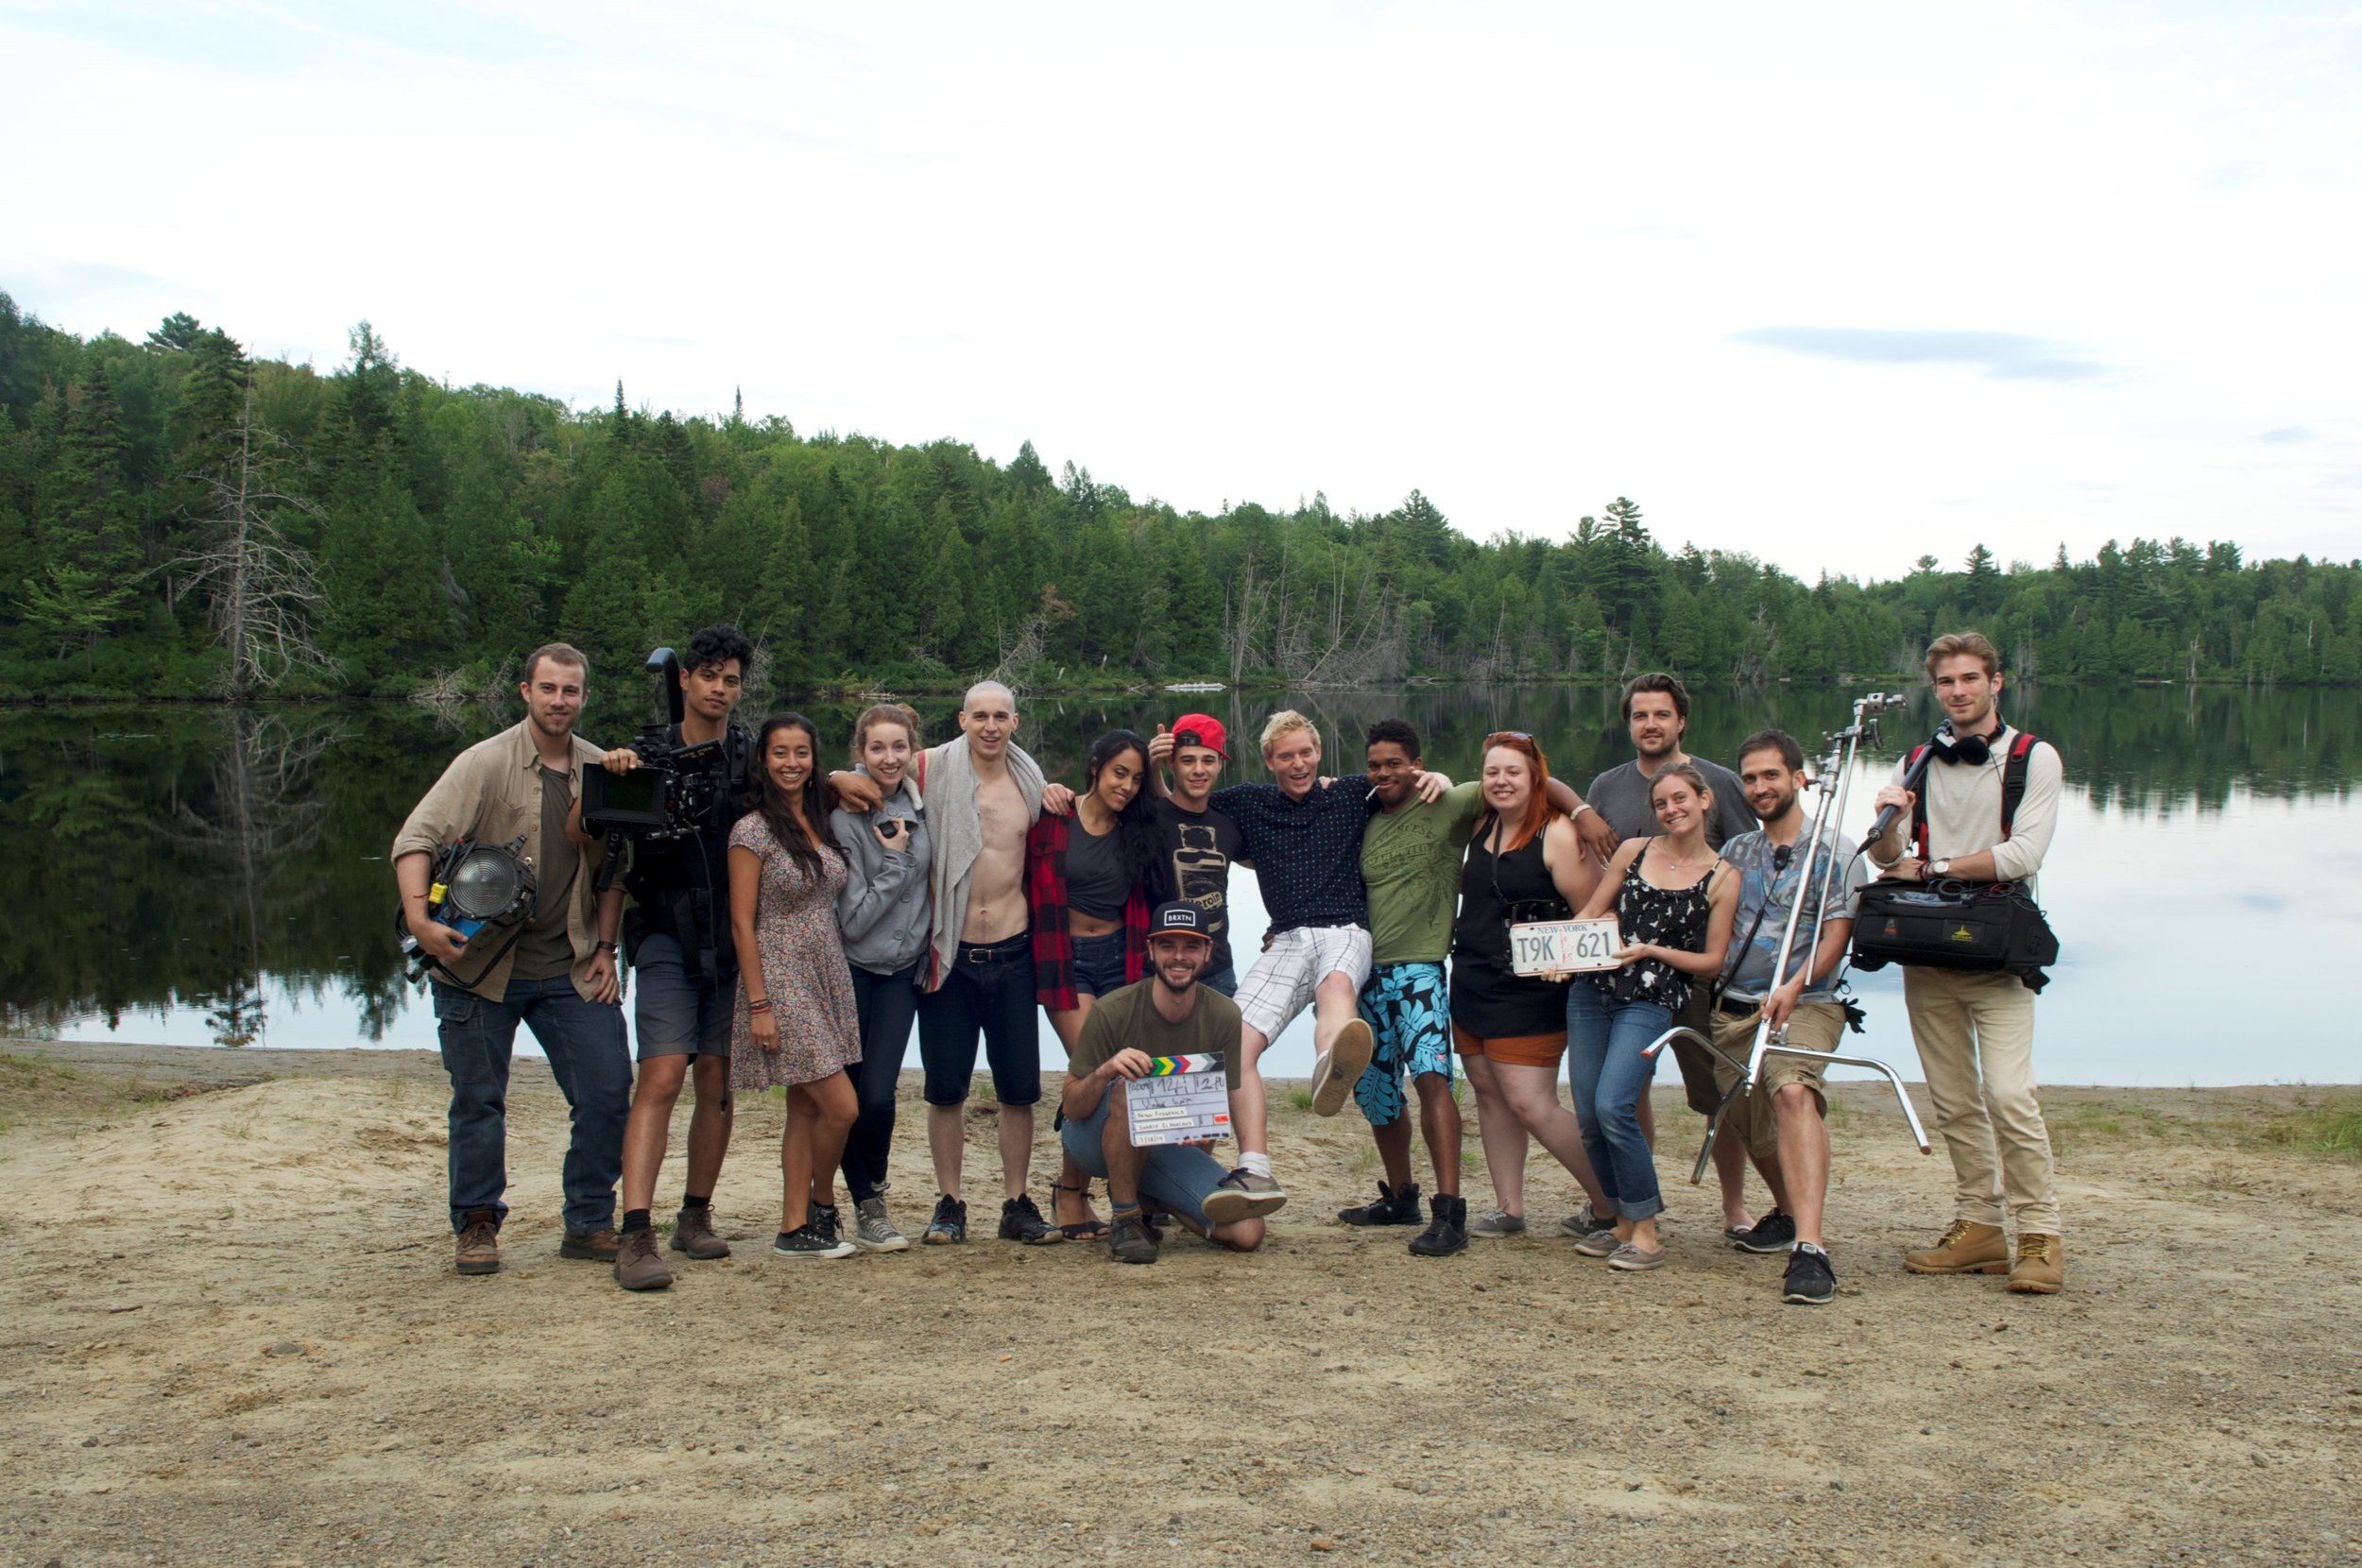 Cast and crew on location at lake, in Chertsey, Q.C. Photo courtesy of Richard Lessard